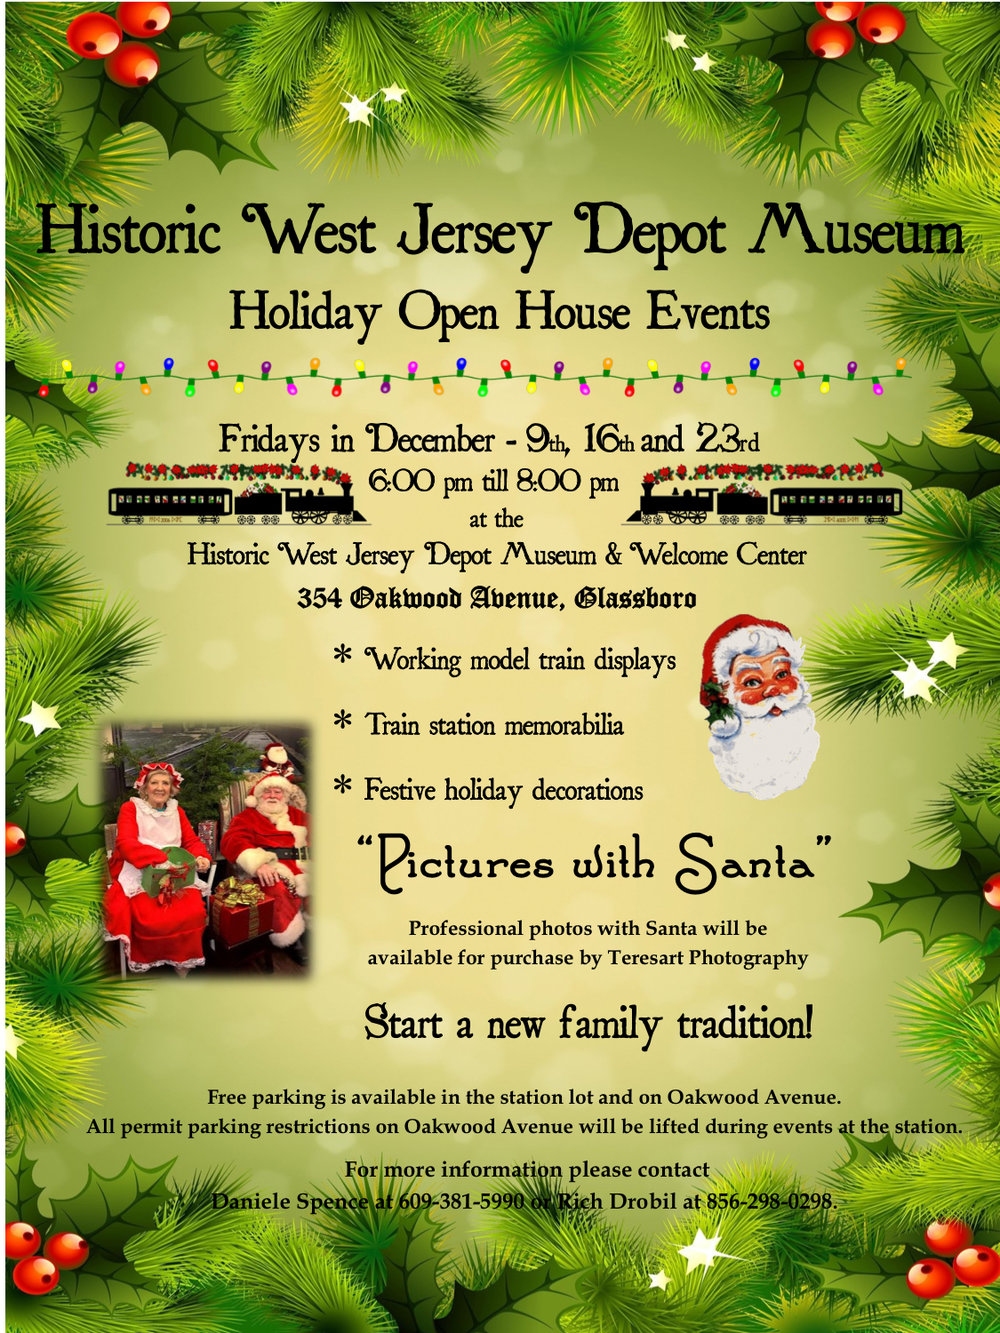 glassboro historic west jersey depot museum Holiday Open House.jpeg